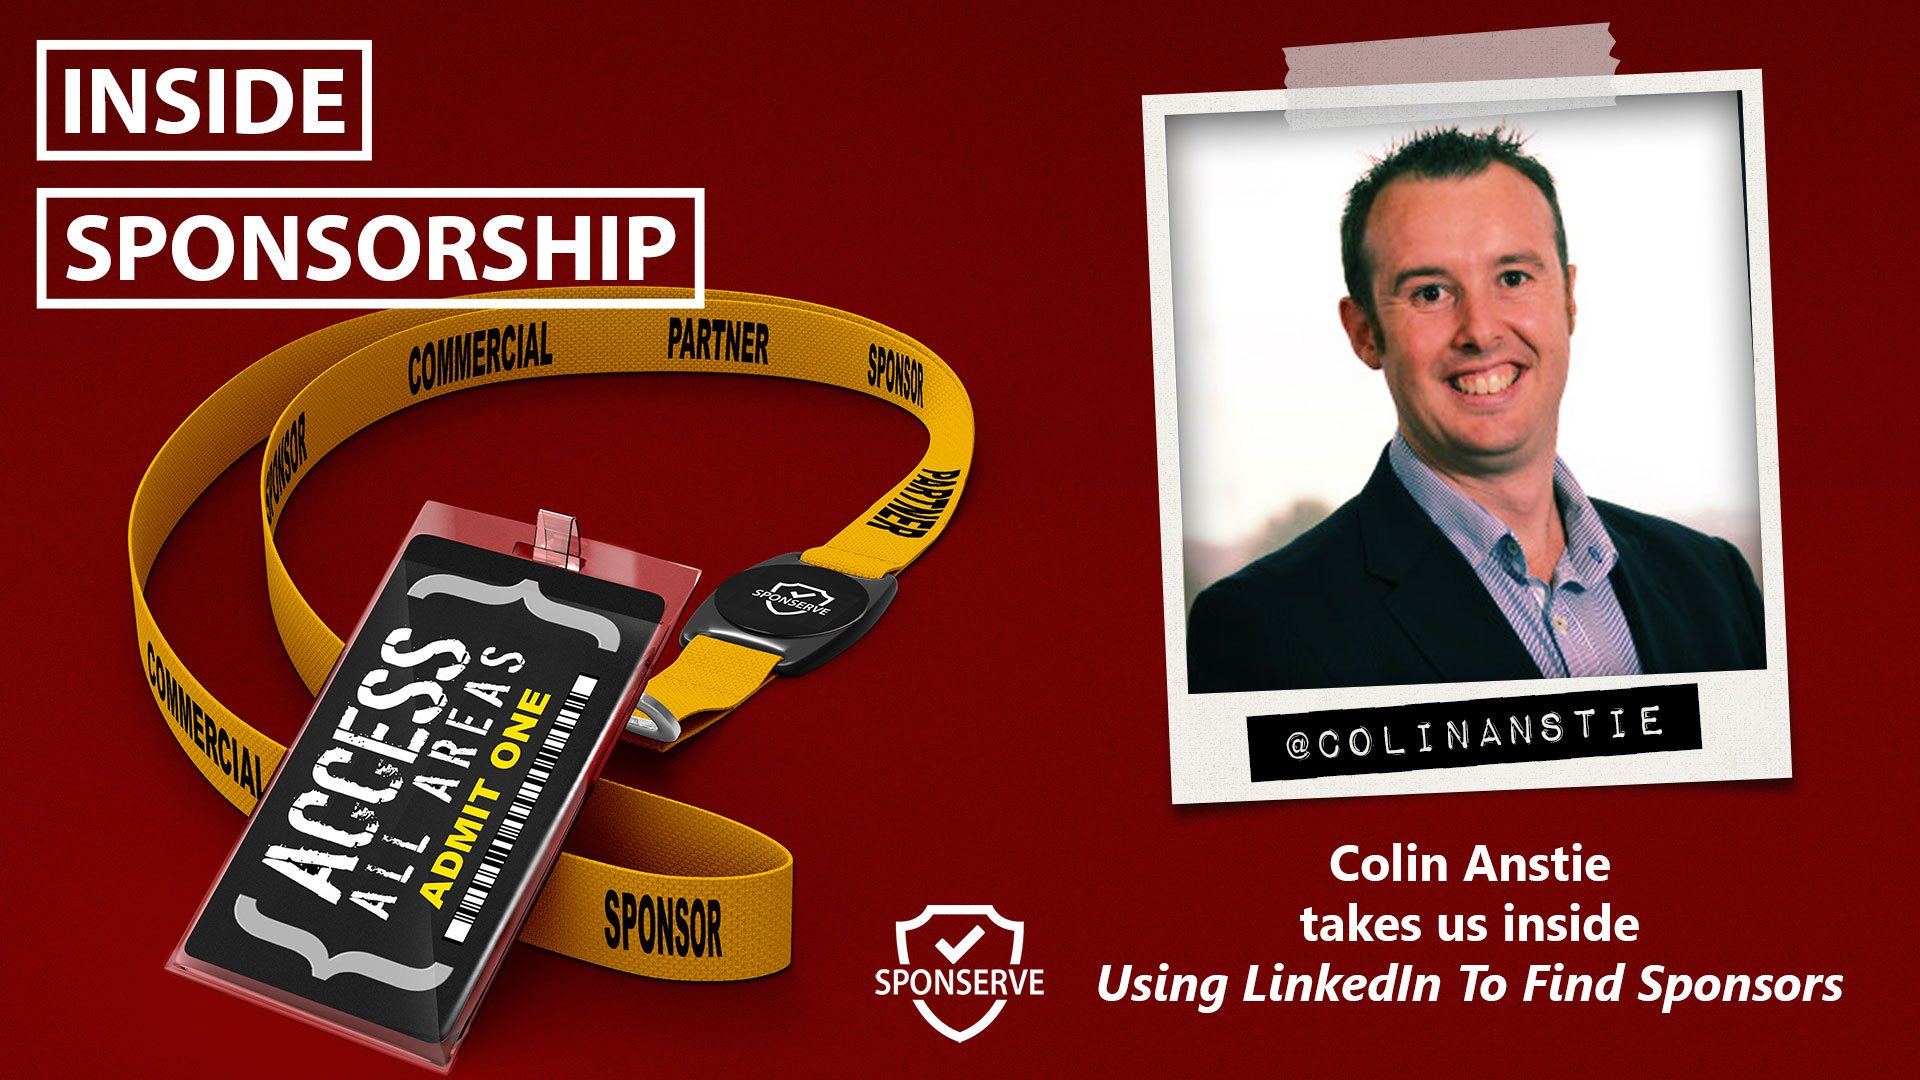 Using LinkedIn To Connect With Sponsors